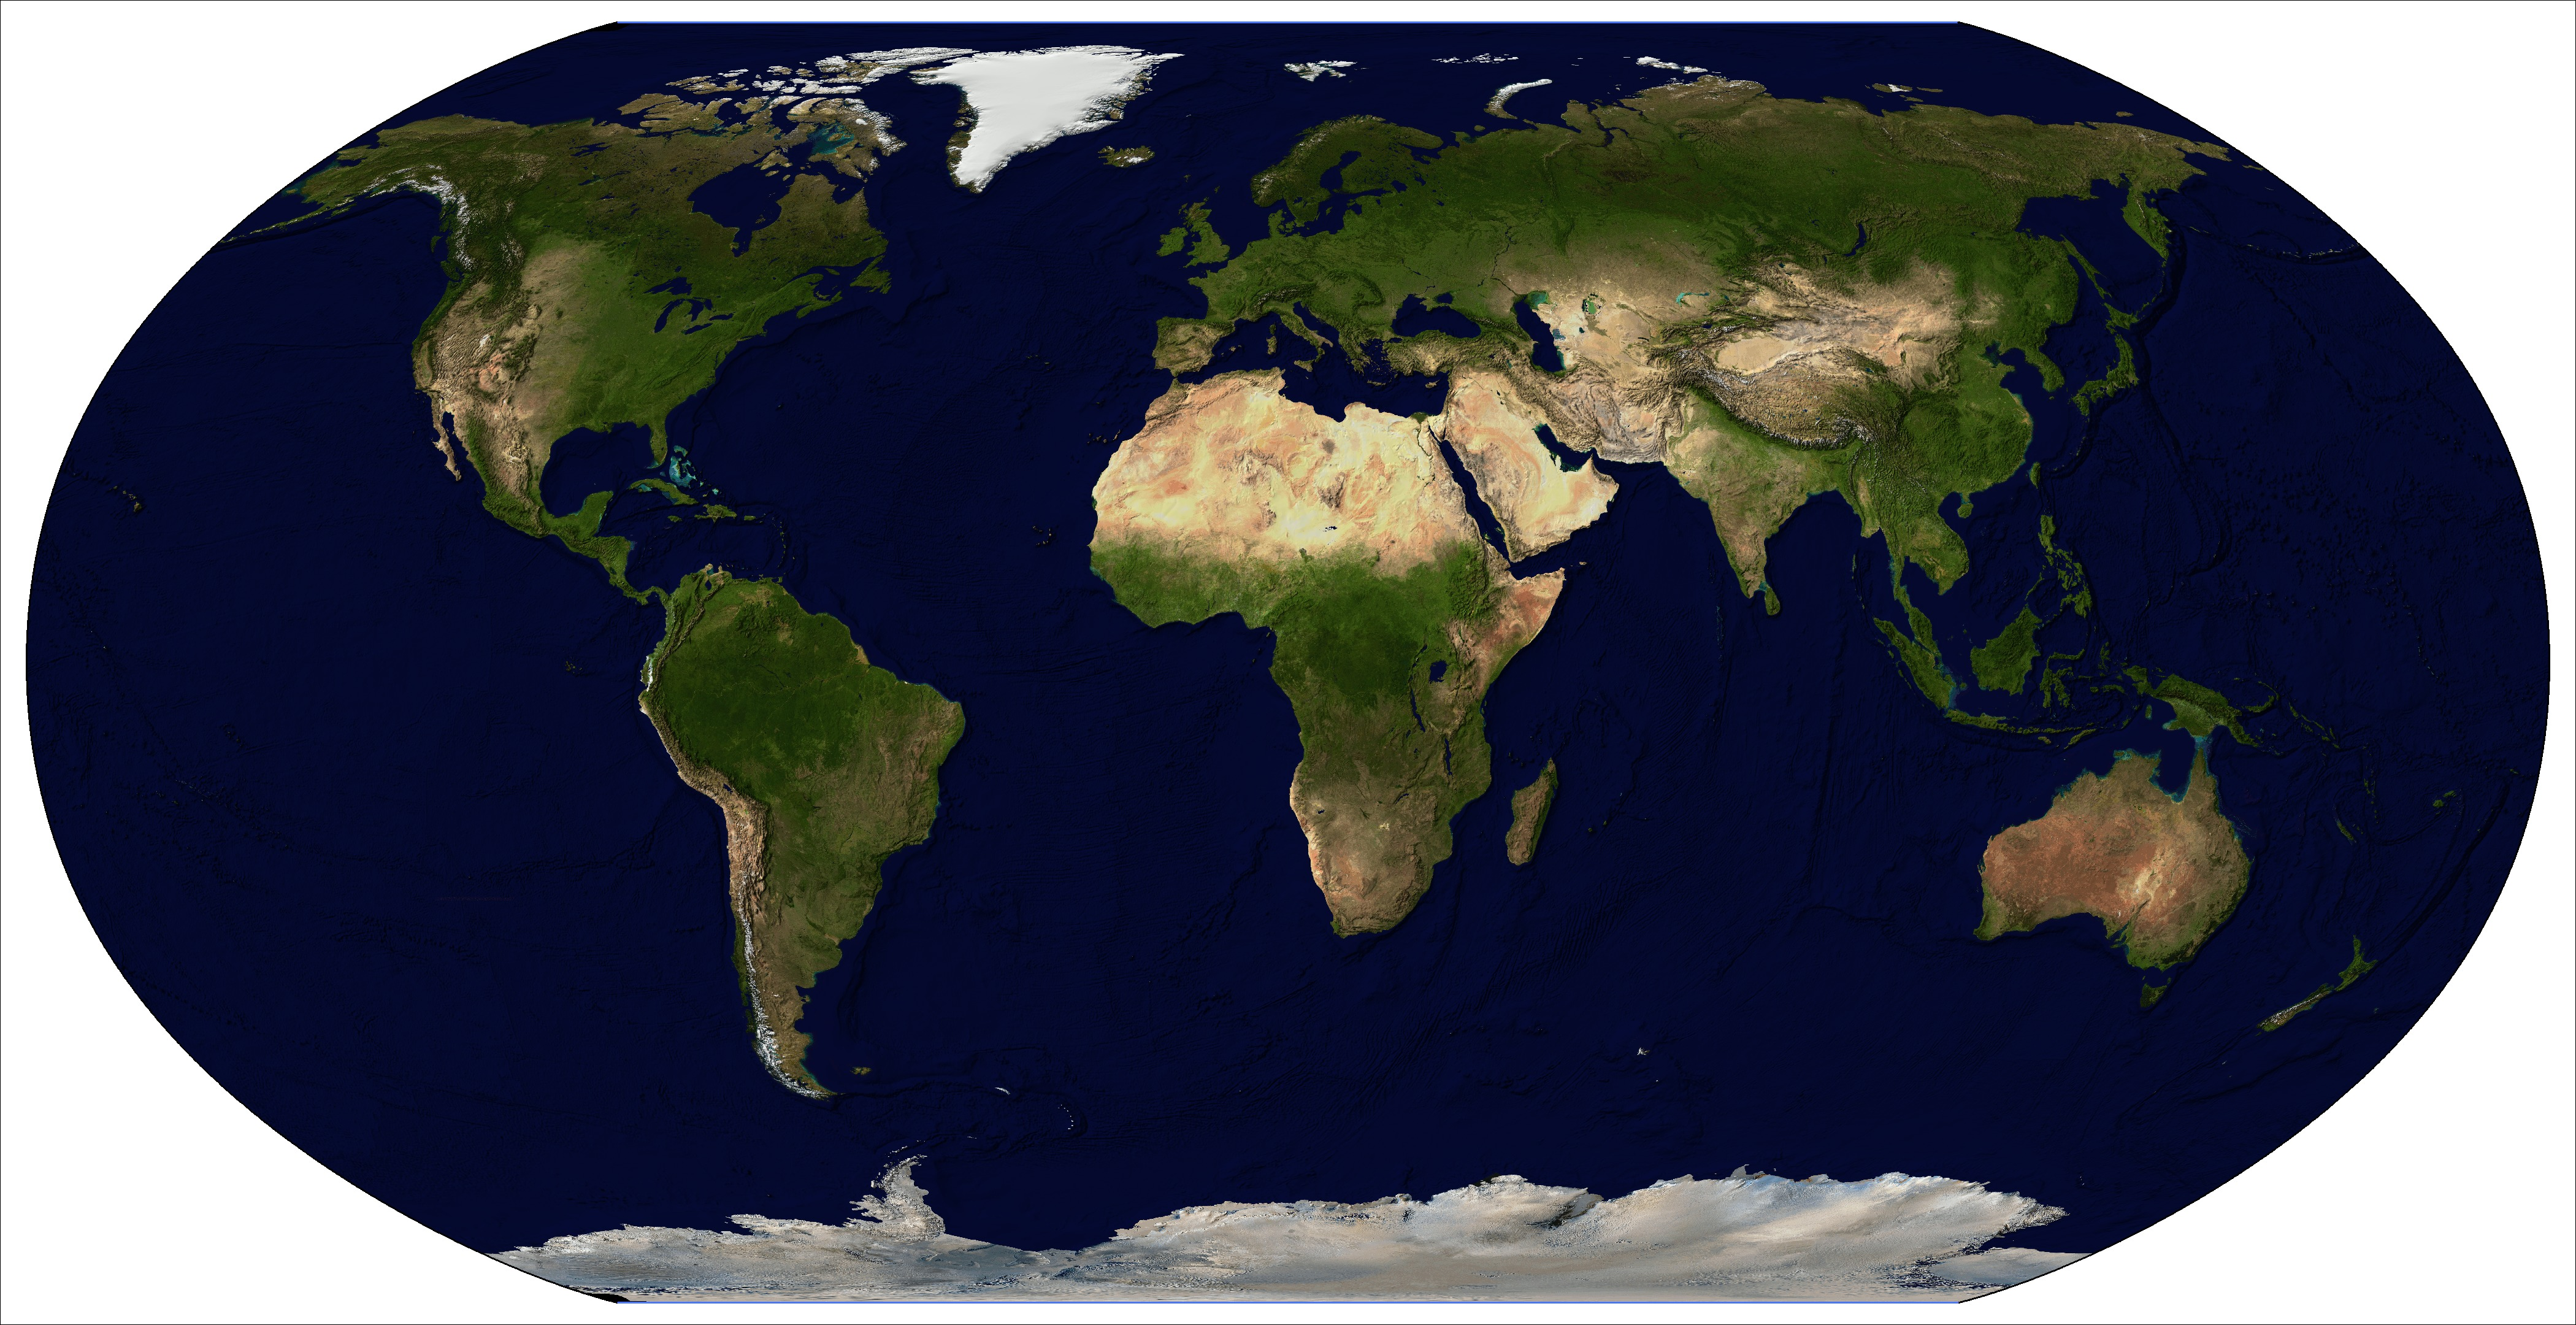 world map hd png best of bluemarble free political png hd